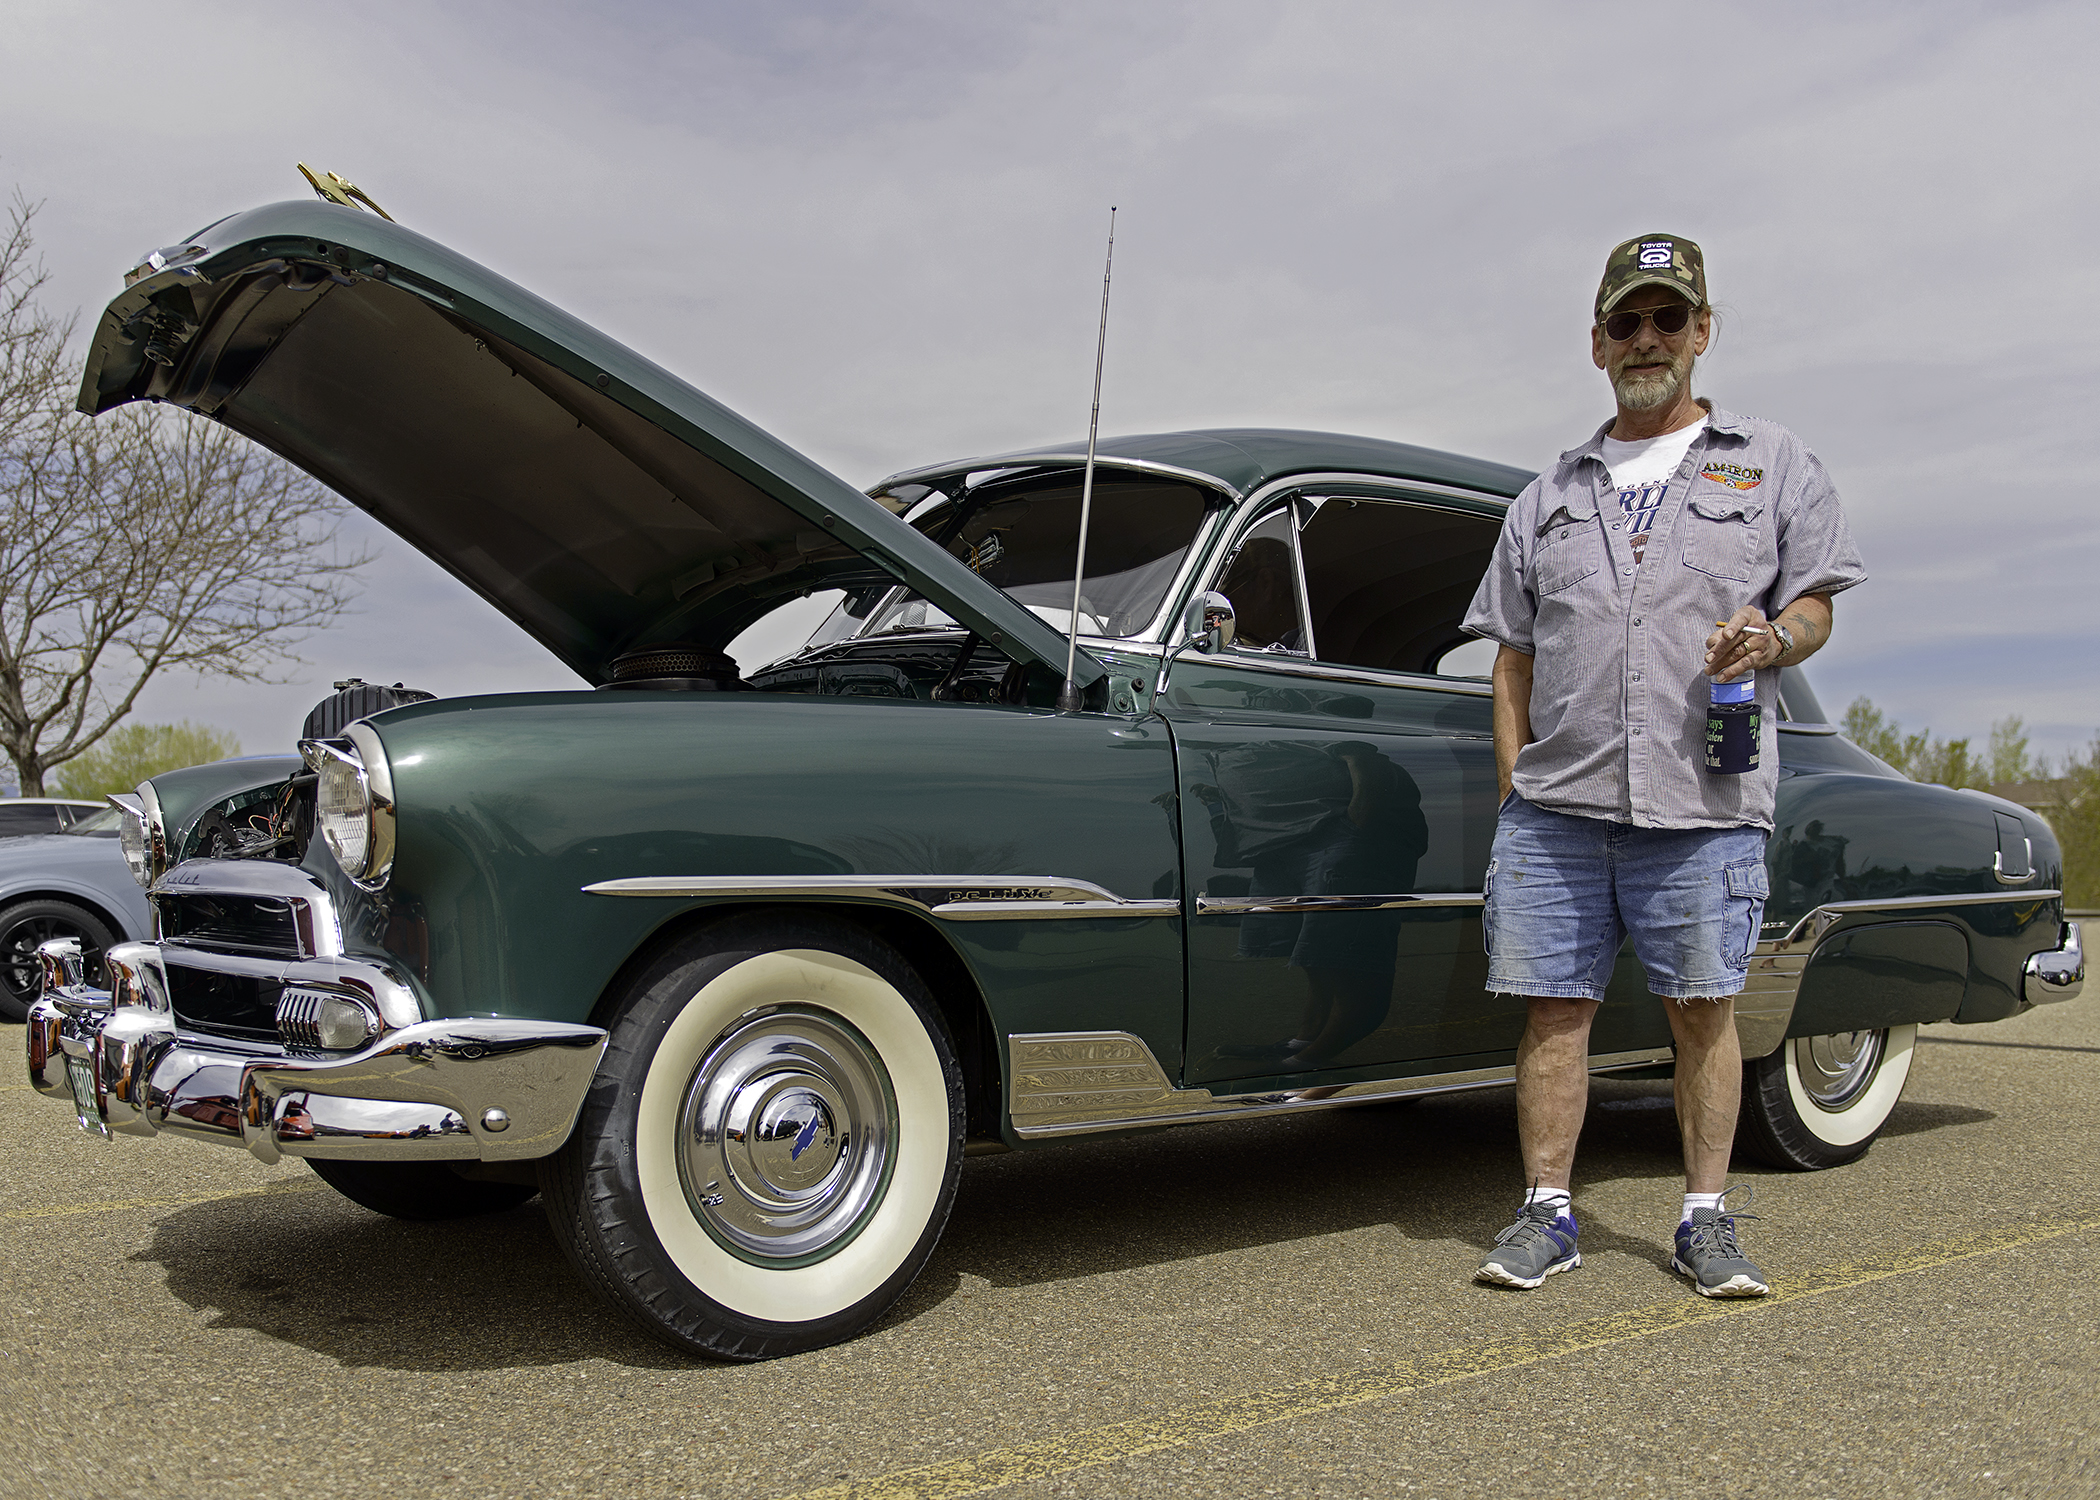 Mac and his beautifully restored Chevrolet DeLuxe.